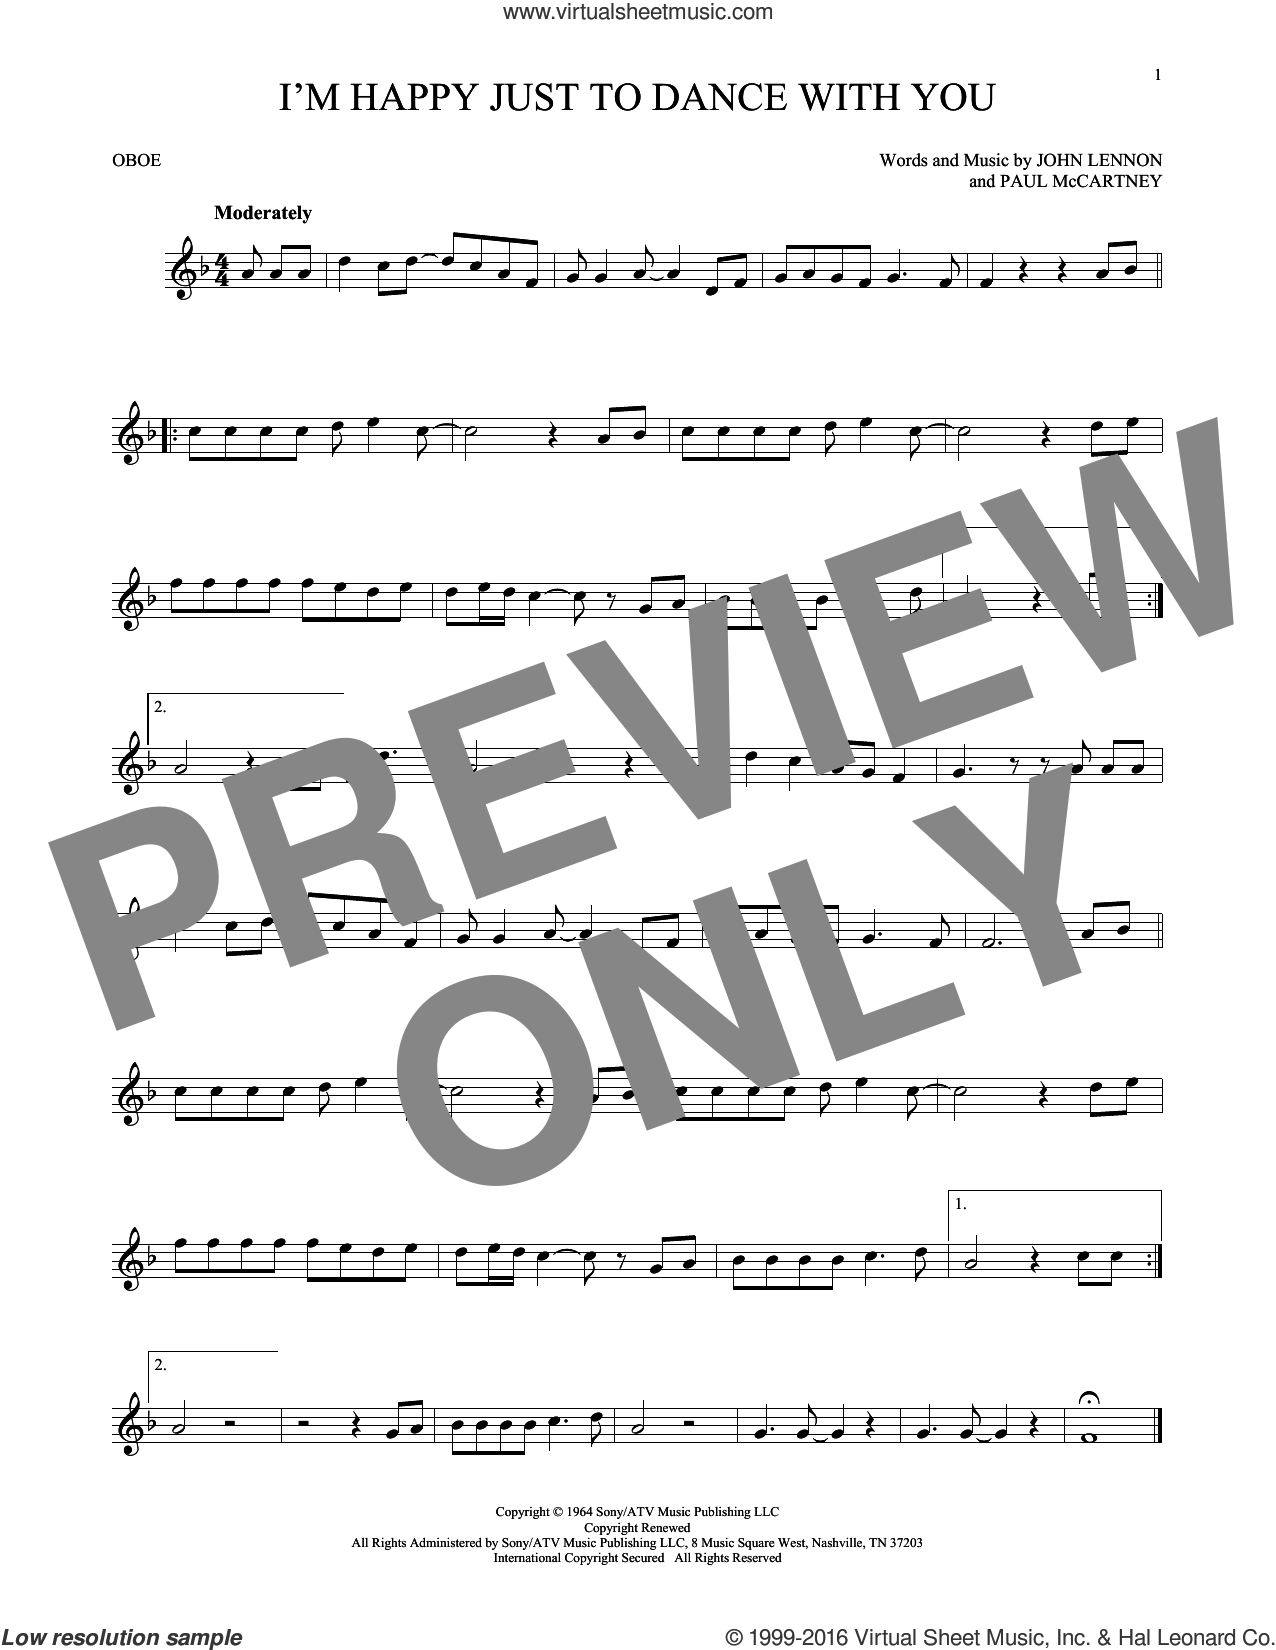 I'm Happy Just To Dance With You sheet music for oboe solo by The Beatles, John Lennon and Paul McCartney, intermediate oboe. Score Image Preview.